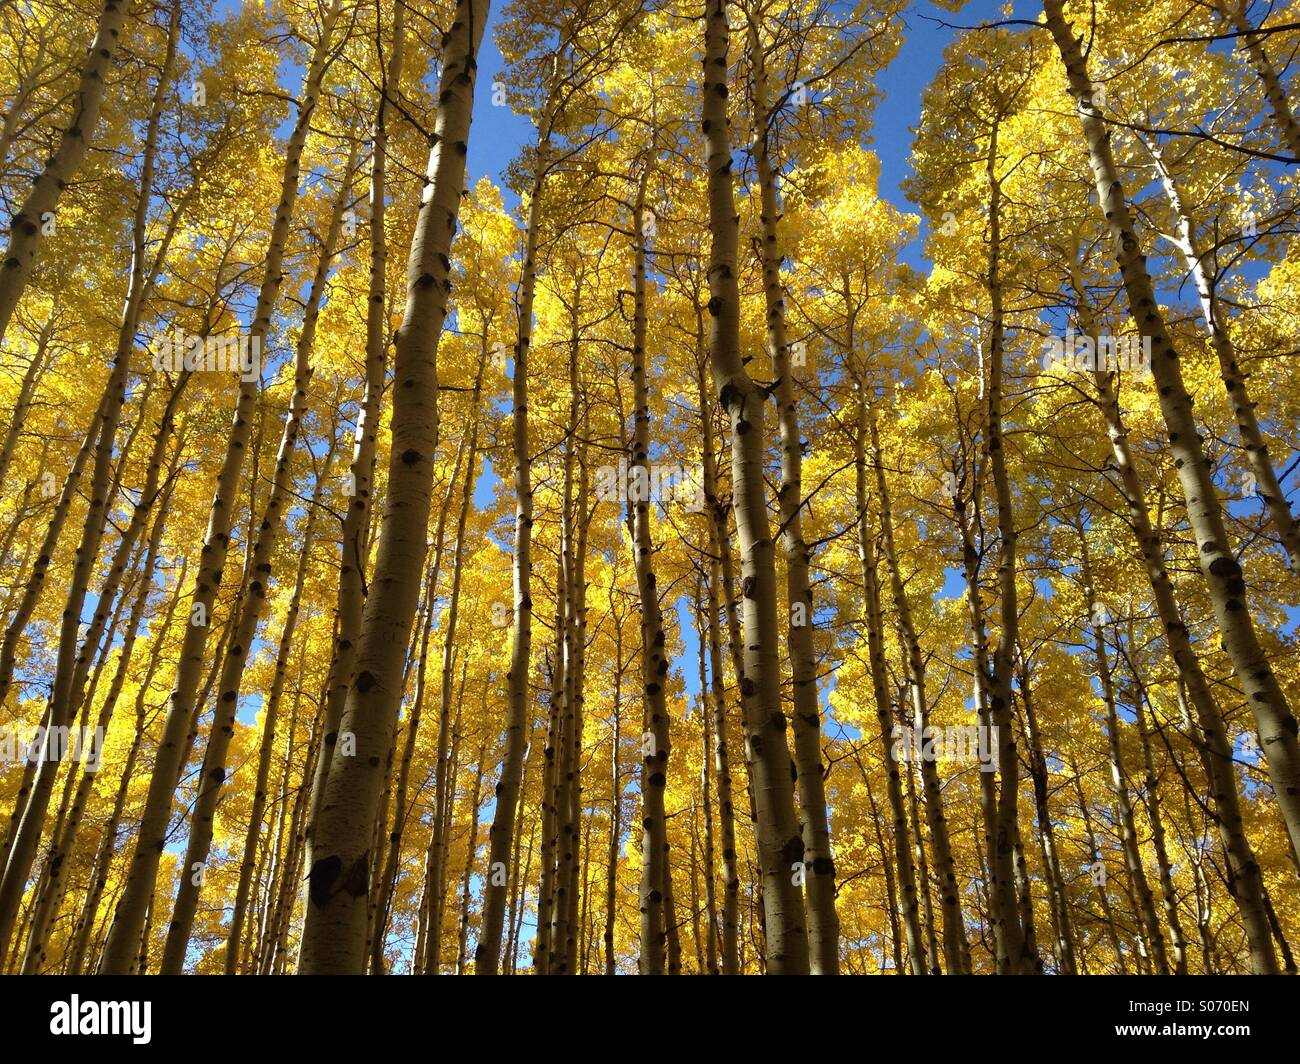 A stand of aspens displays golden leaves in the Wasatch mountains near Salt Lake City, Utah. - Stock Image